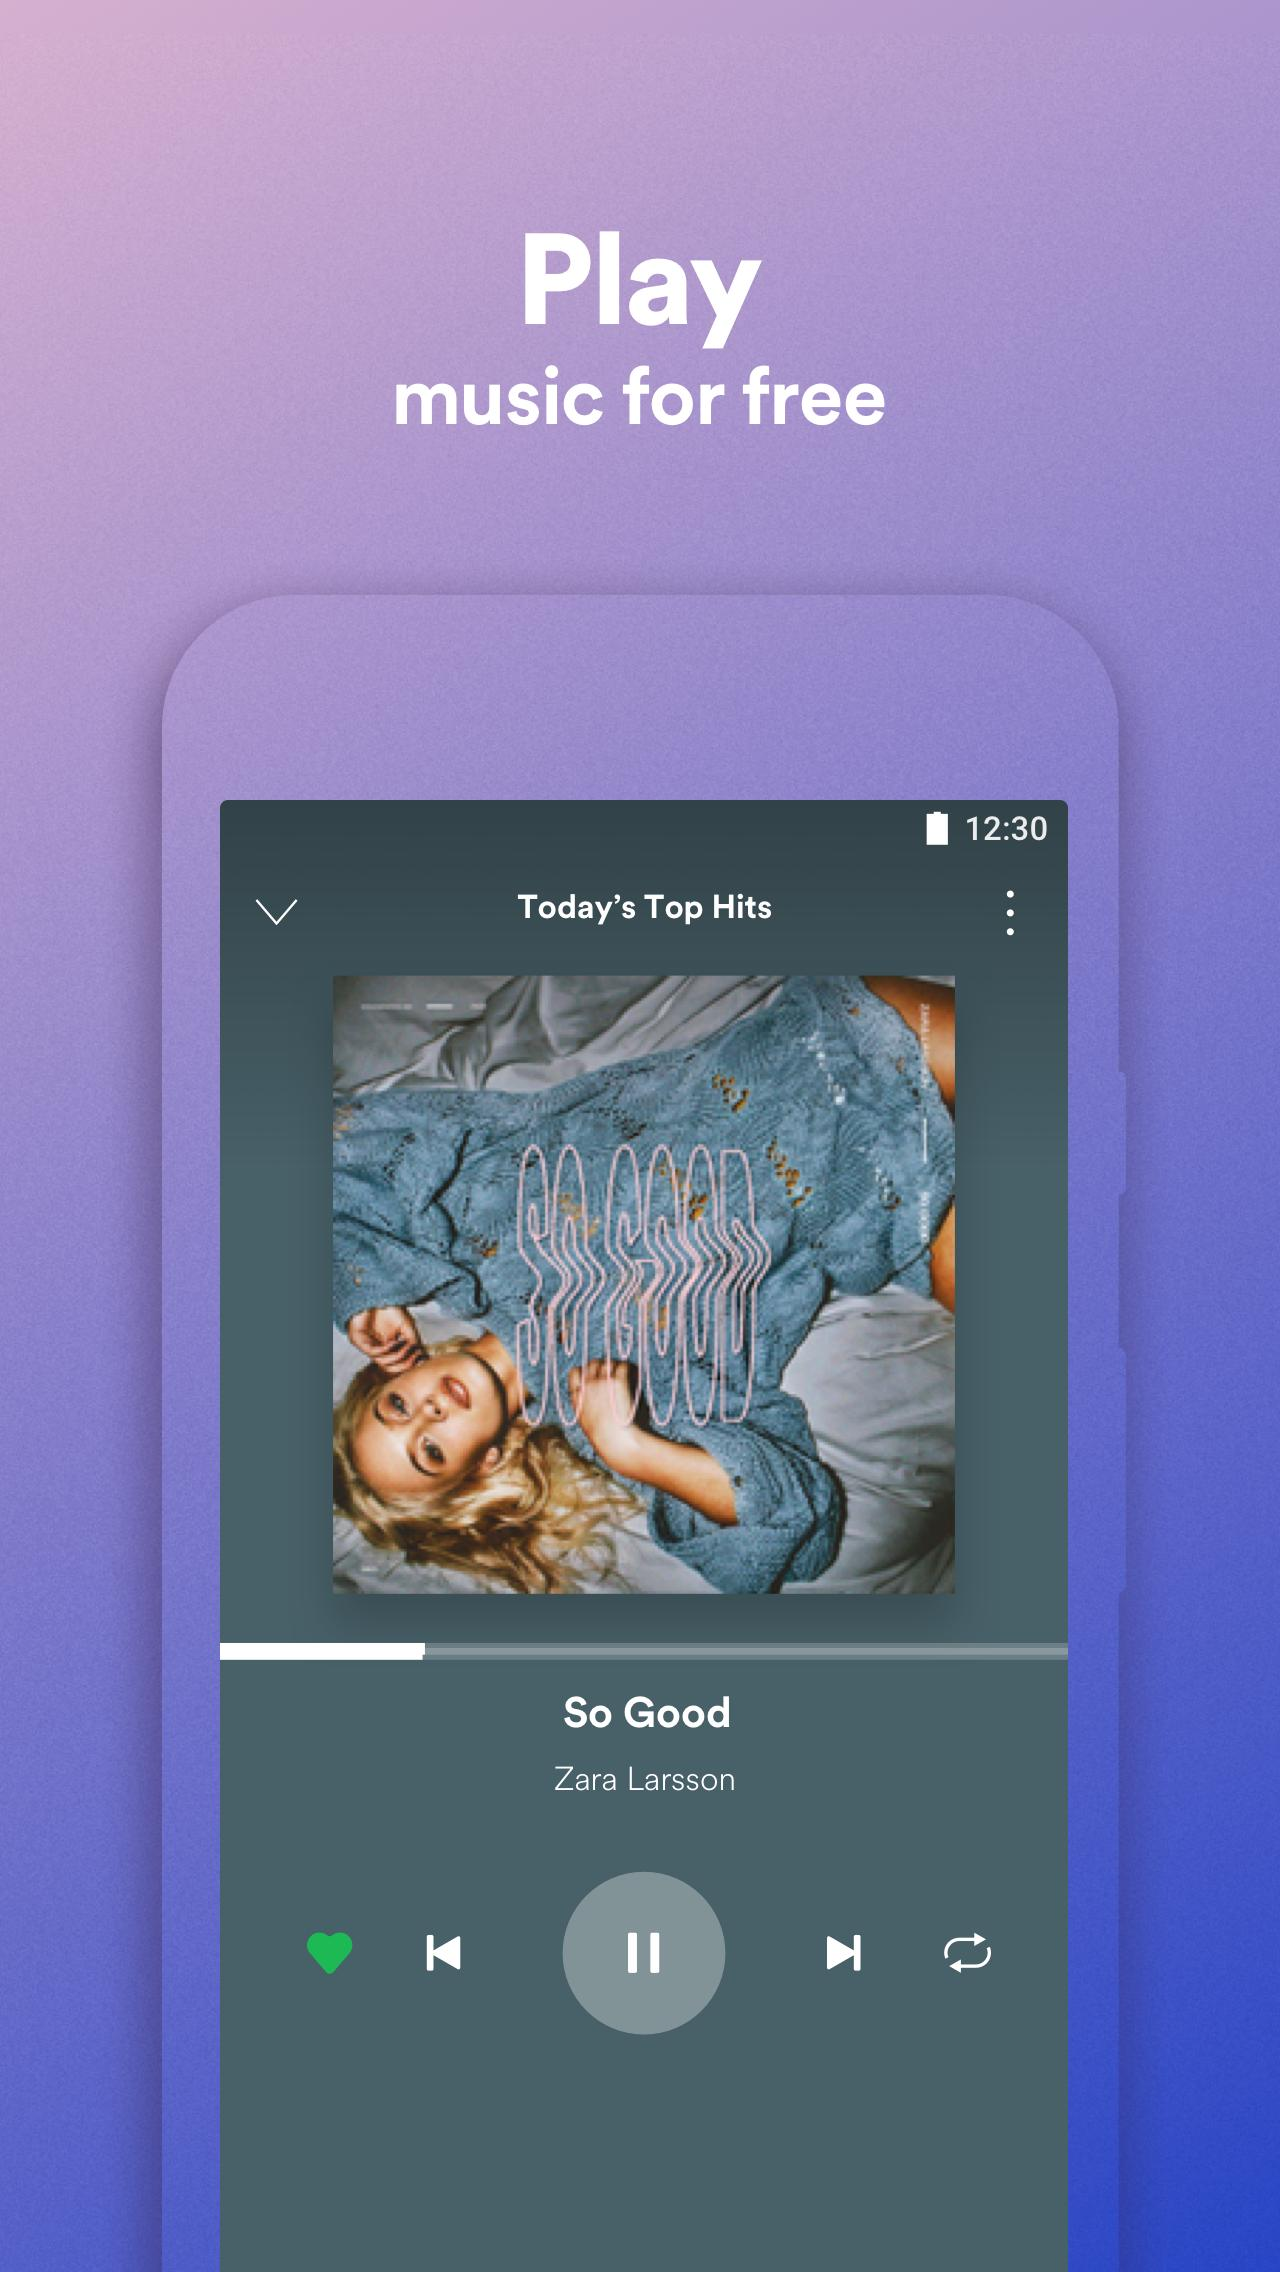 Spotify Lite download app for Android - eenternet